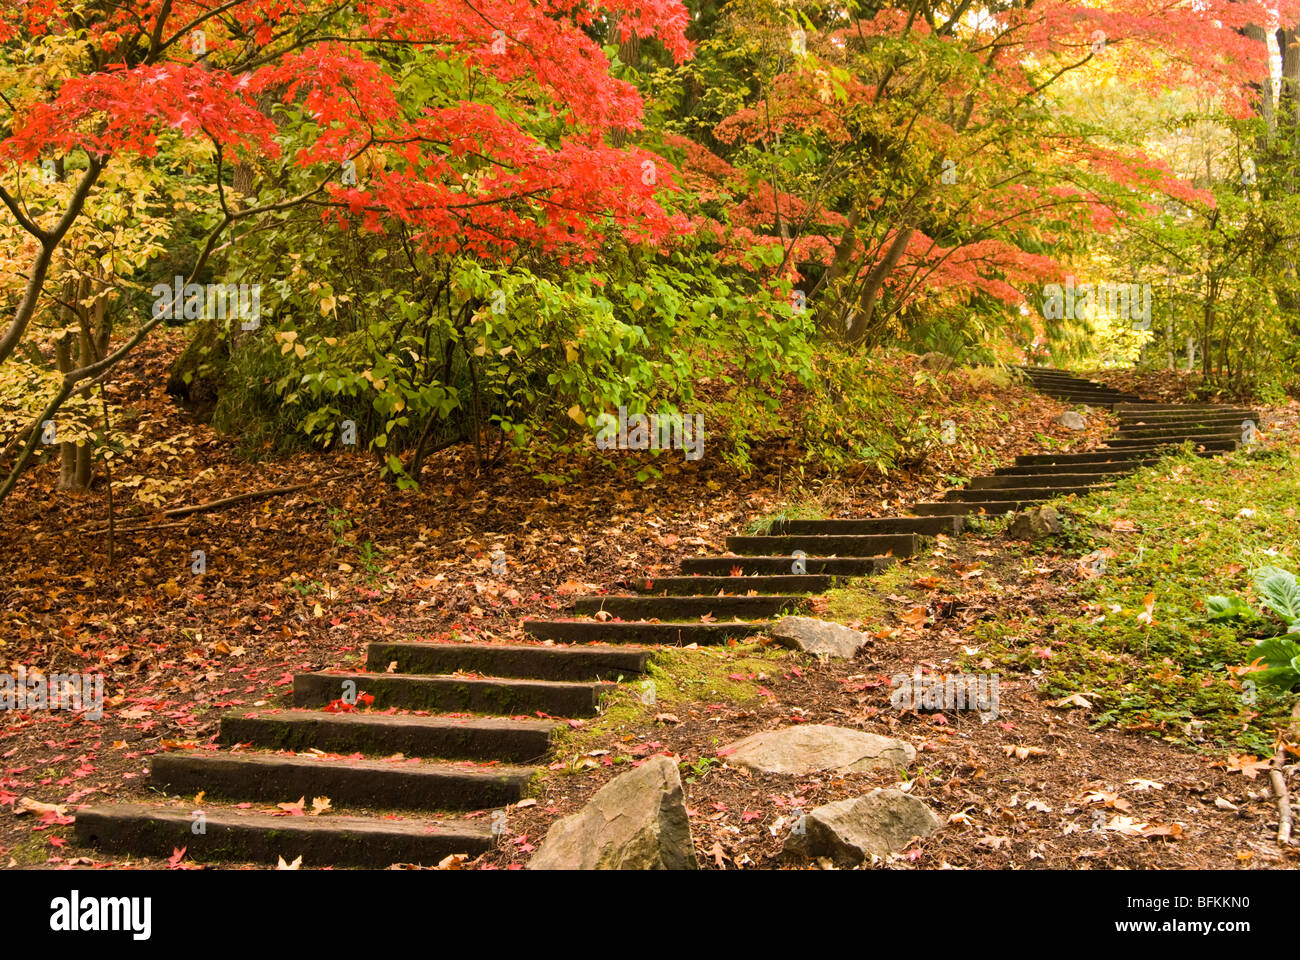 A Set Of Stairs Leads To Fall Colors In Seattleu0027s Washington Park  Arboretum.   Stock